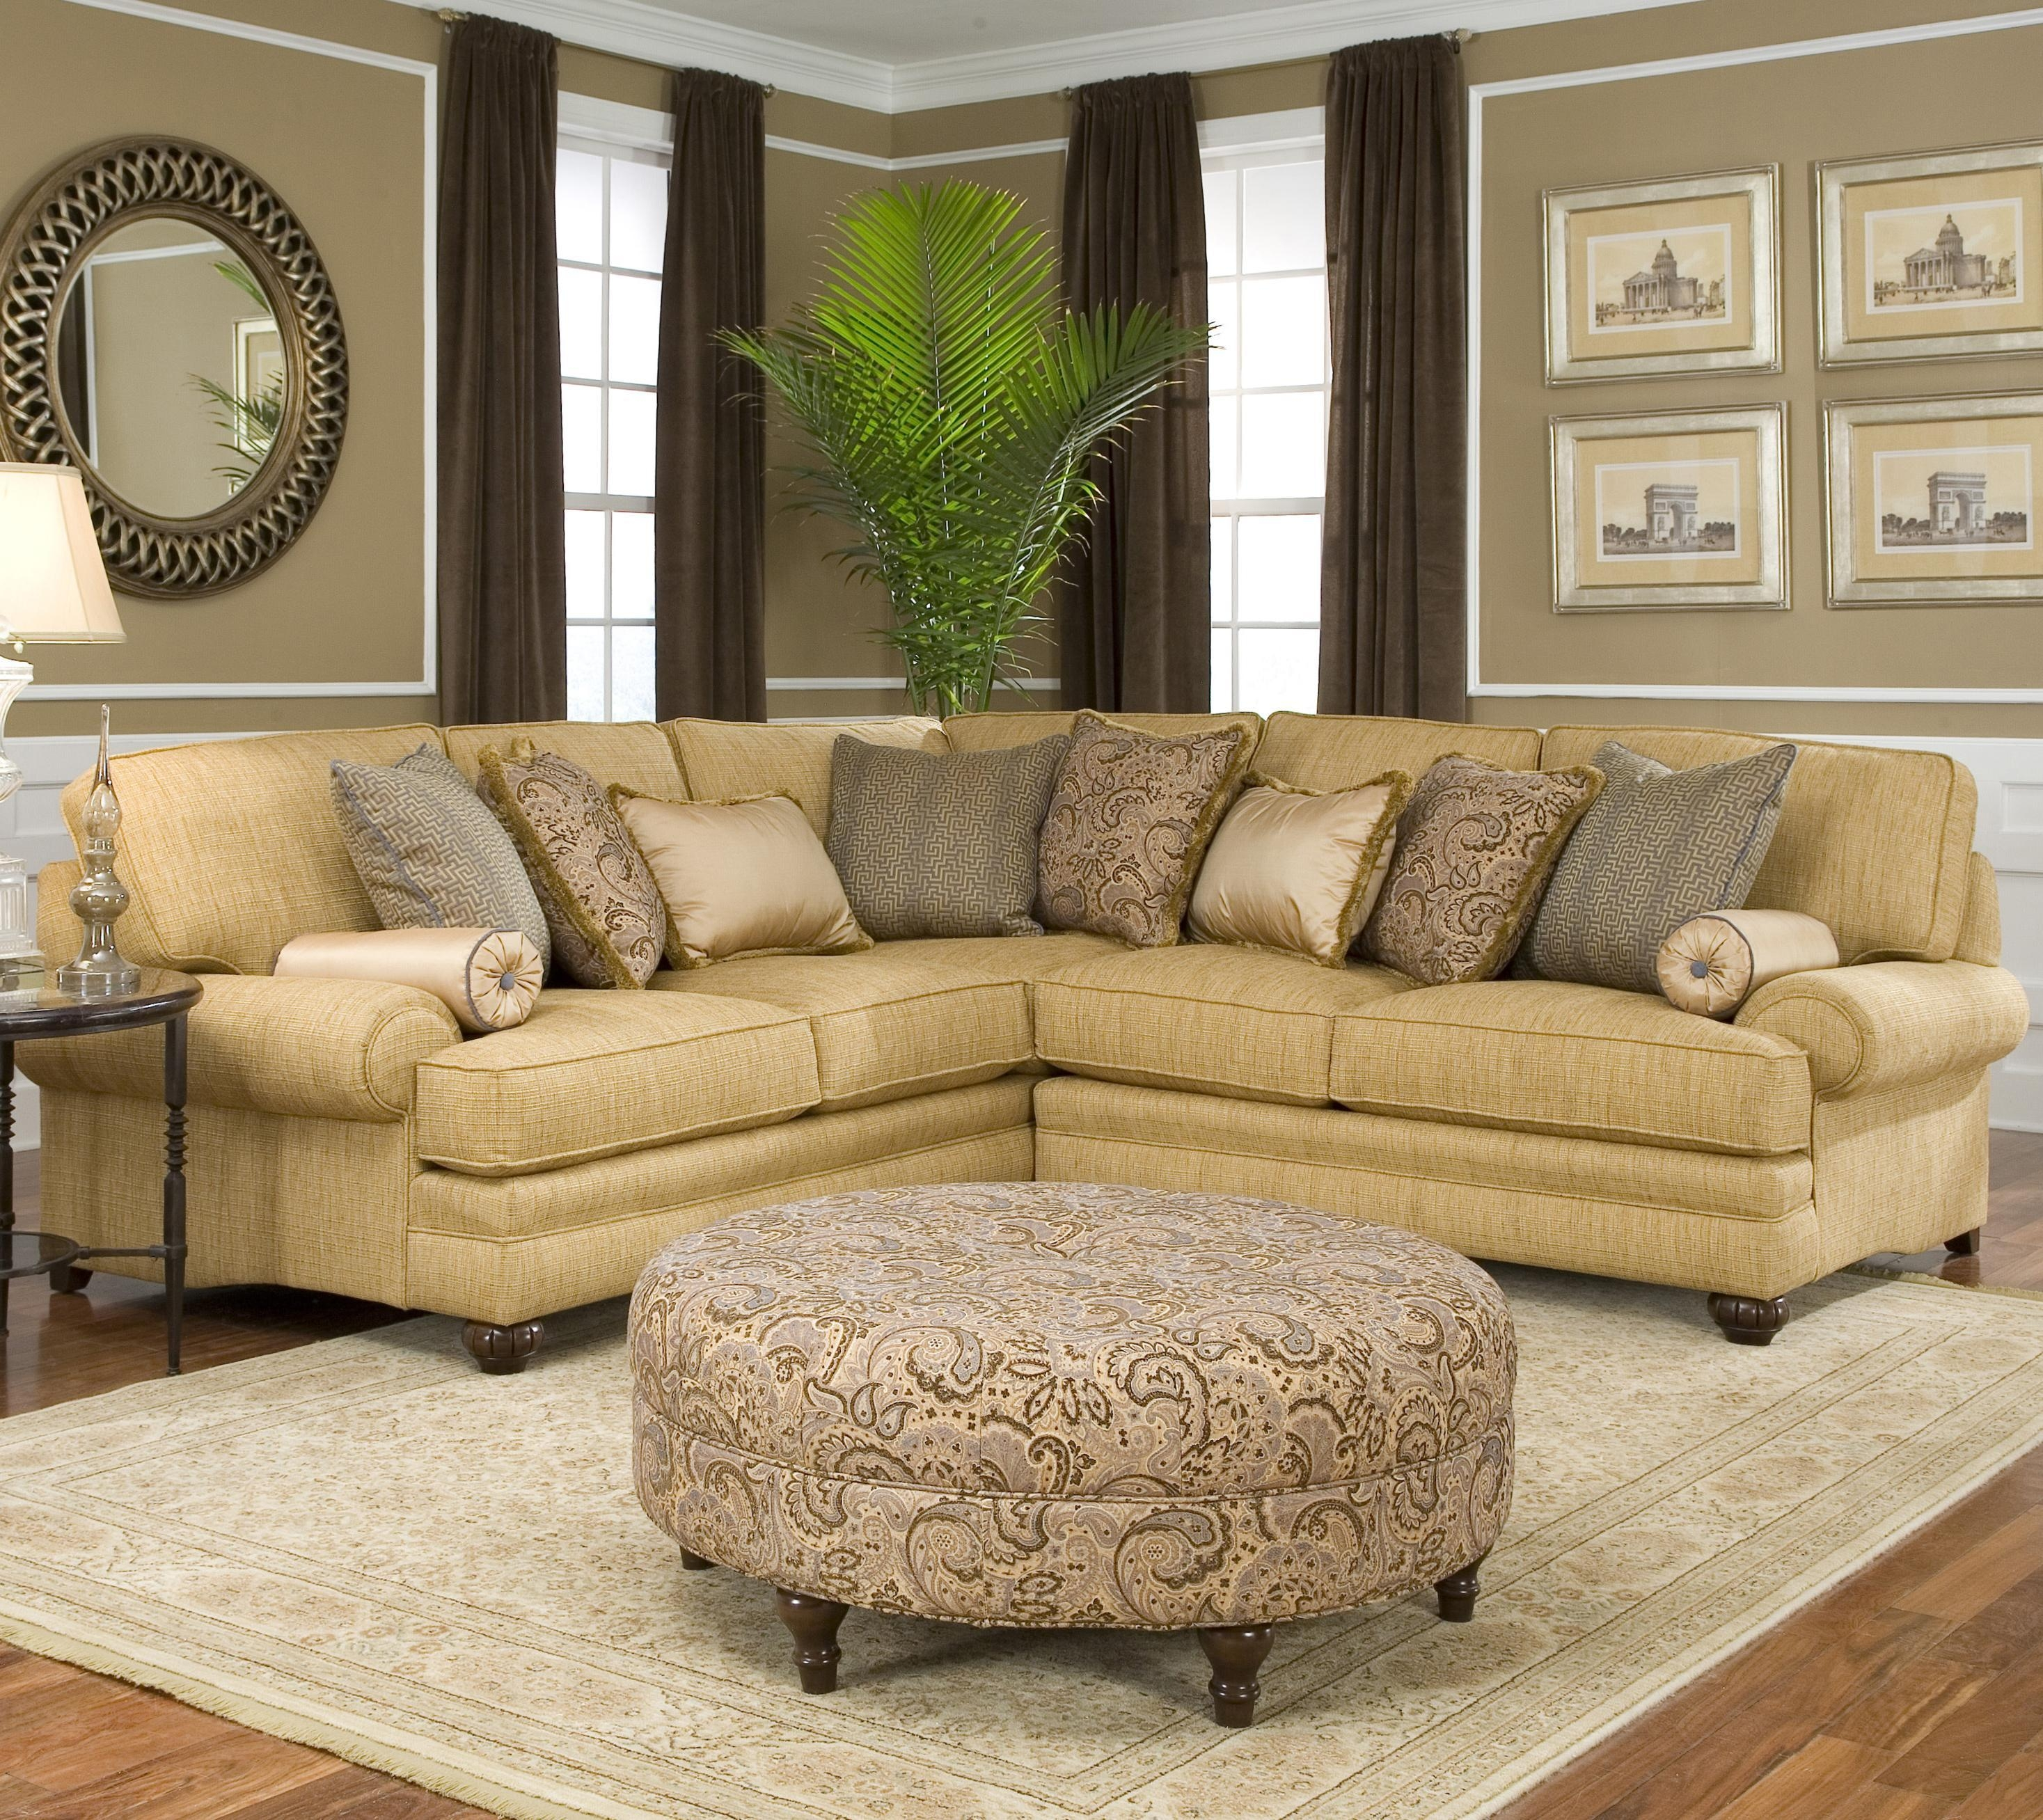 20 Top Traditional Sectional Sofas Living Room Furniture | Sofa Ideas